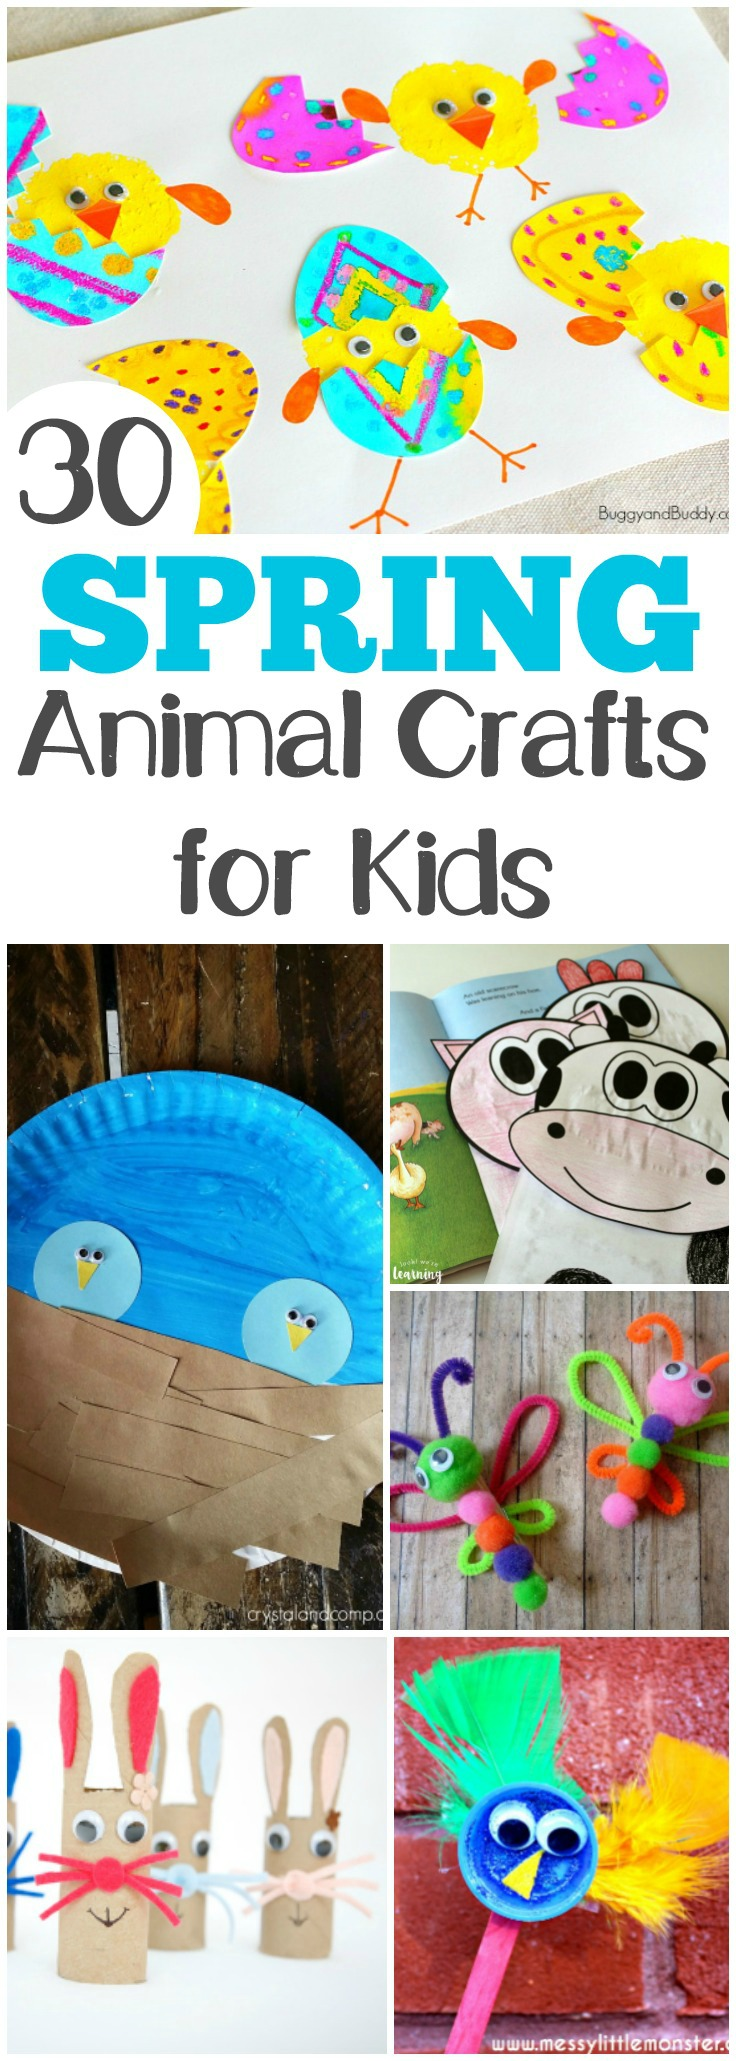 Make these 30 adorable and easy spring animal crafts with the kids!